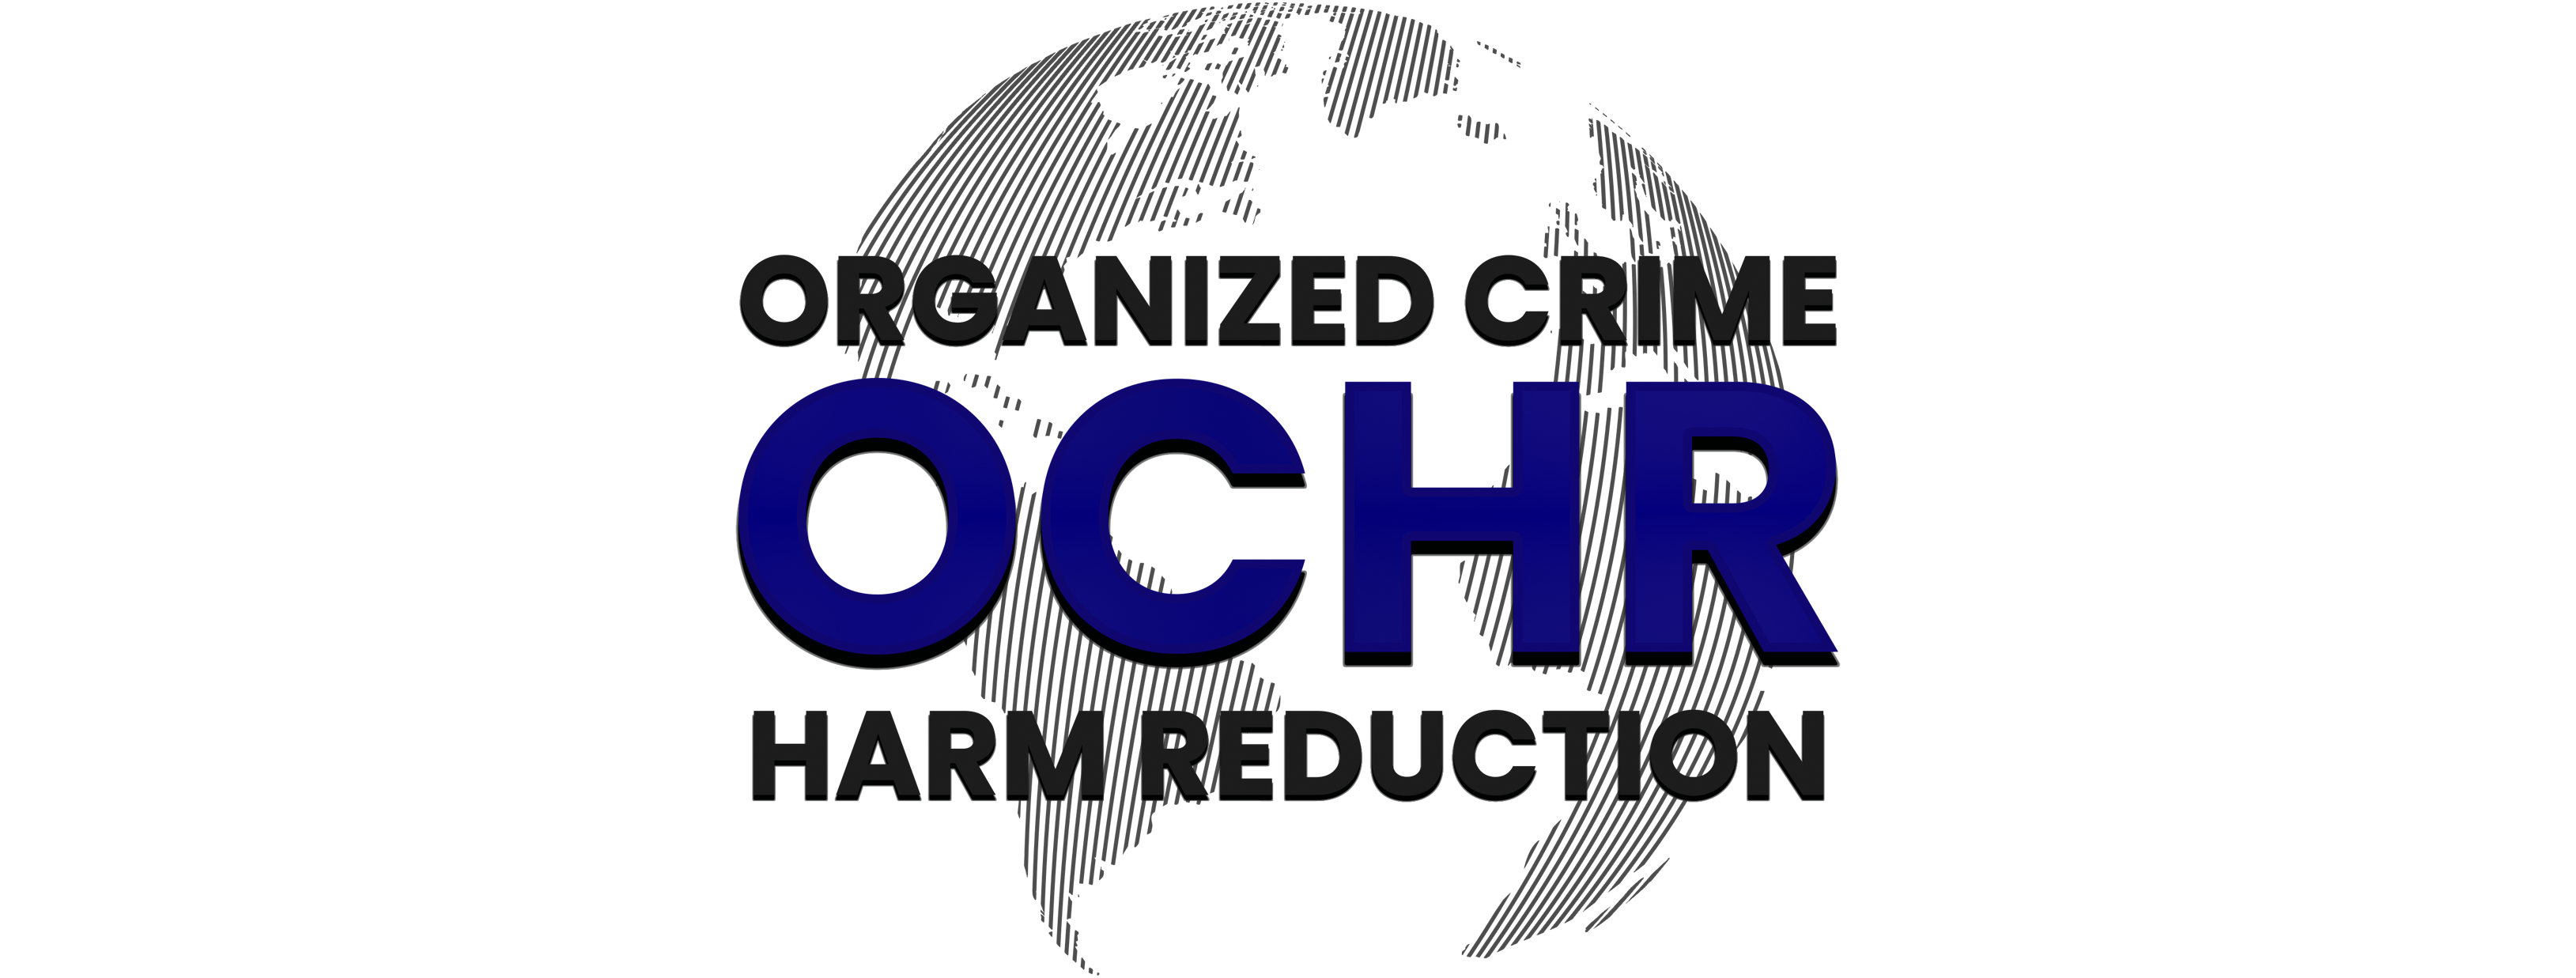 O.C.H.R. | ORGANIZED CRIME HARM REDUCTION